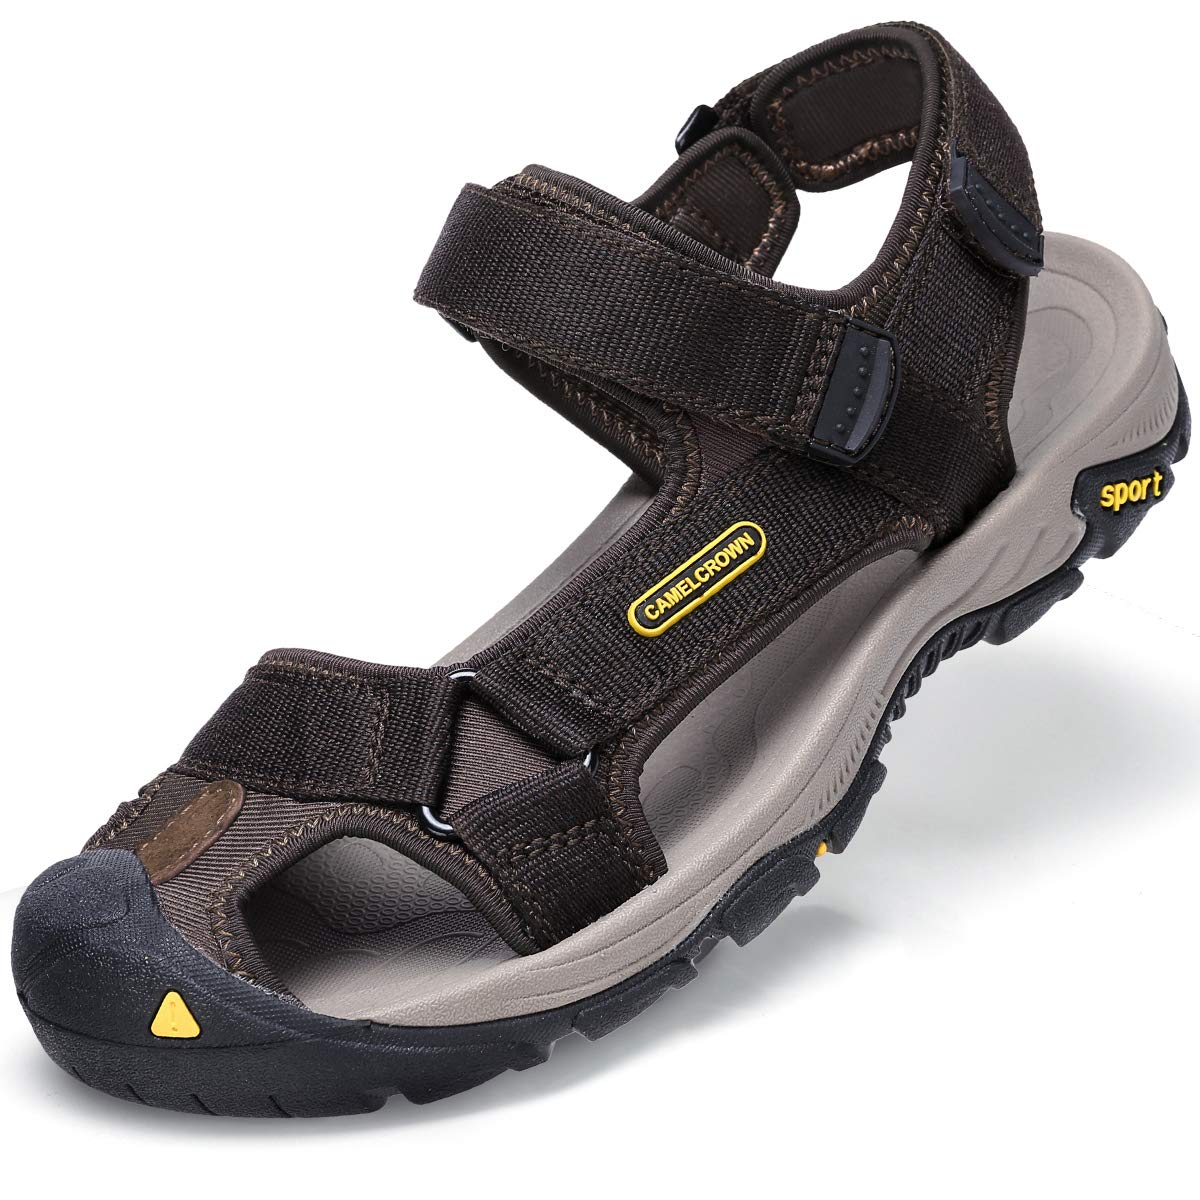 4f65e05abc9 Amazon.com  CAMEL CROWN Mens Waterproof Hiking Sandals Closed Toe Water  Shoes Adjustable Athletic Sandals for Men Outdoor Sport Beach  Clothing